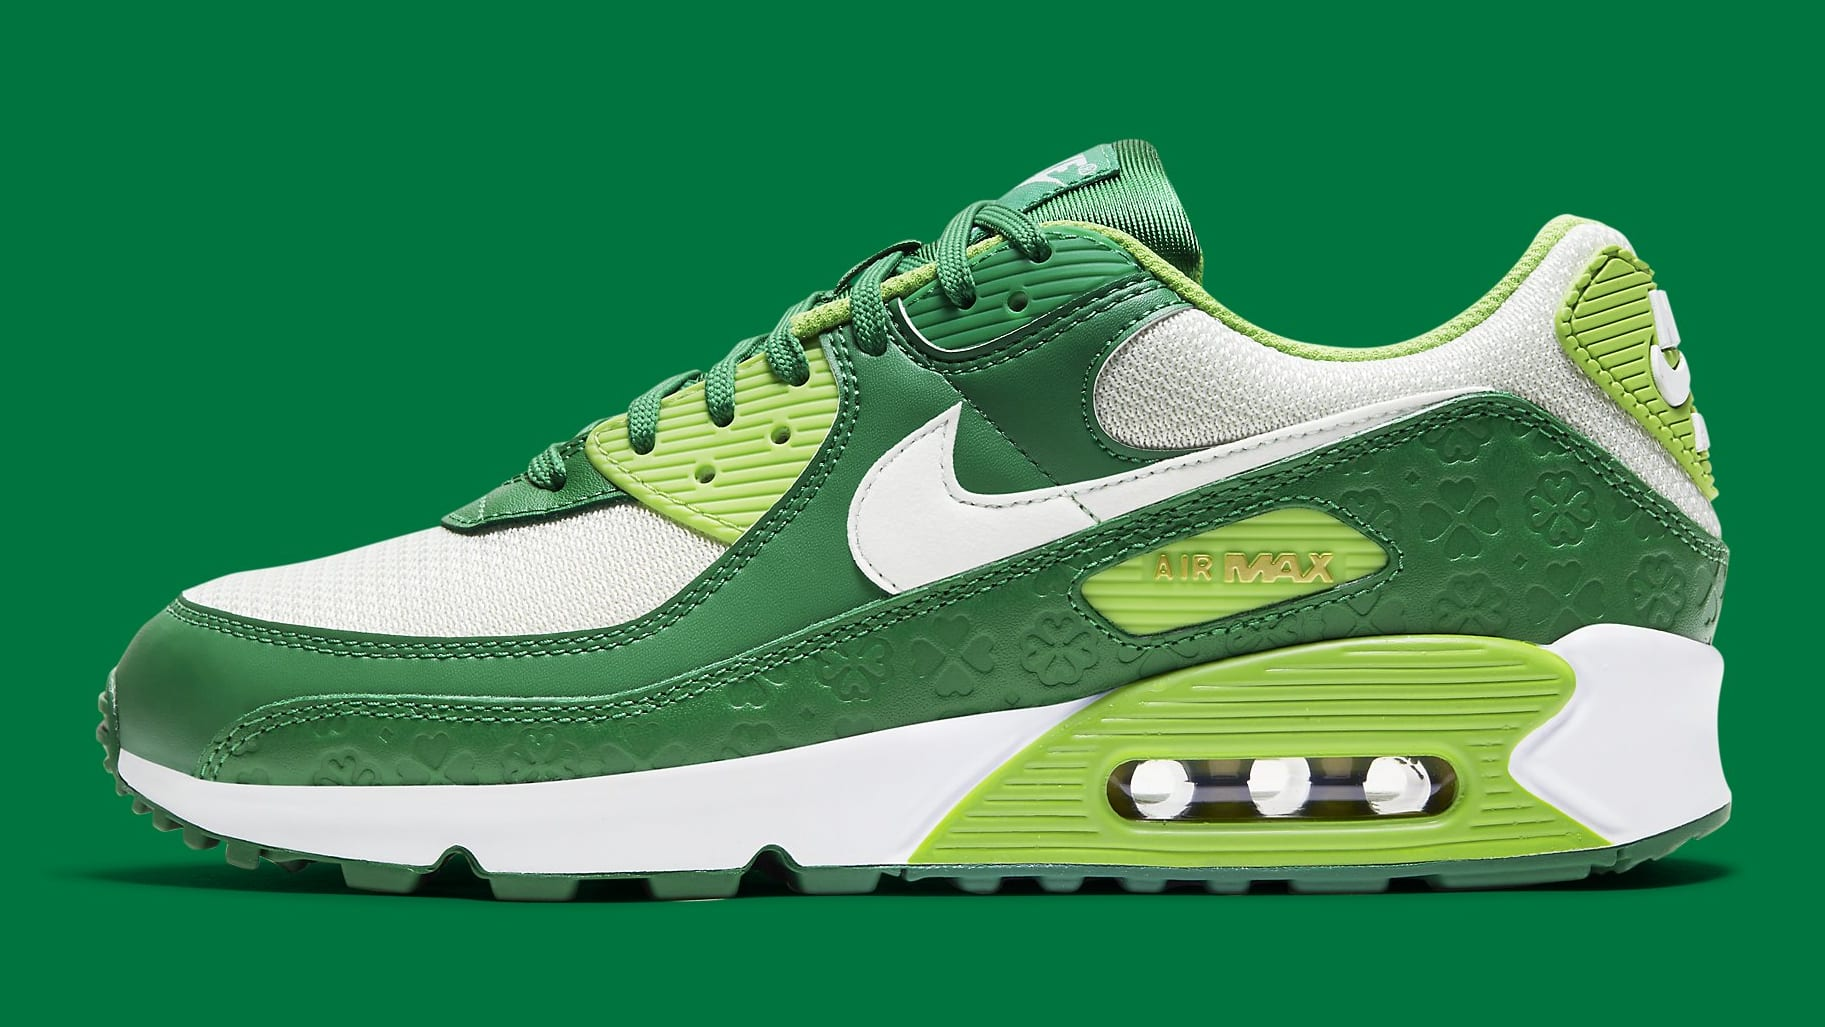 Nike Air Max 90 St. Patrick's Day Release Date DD8555-300 Profile